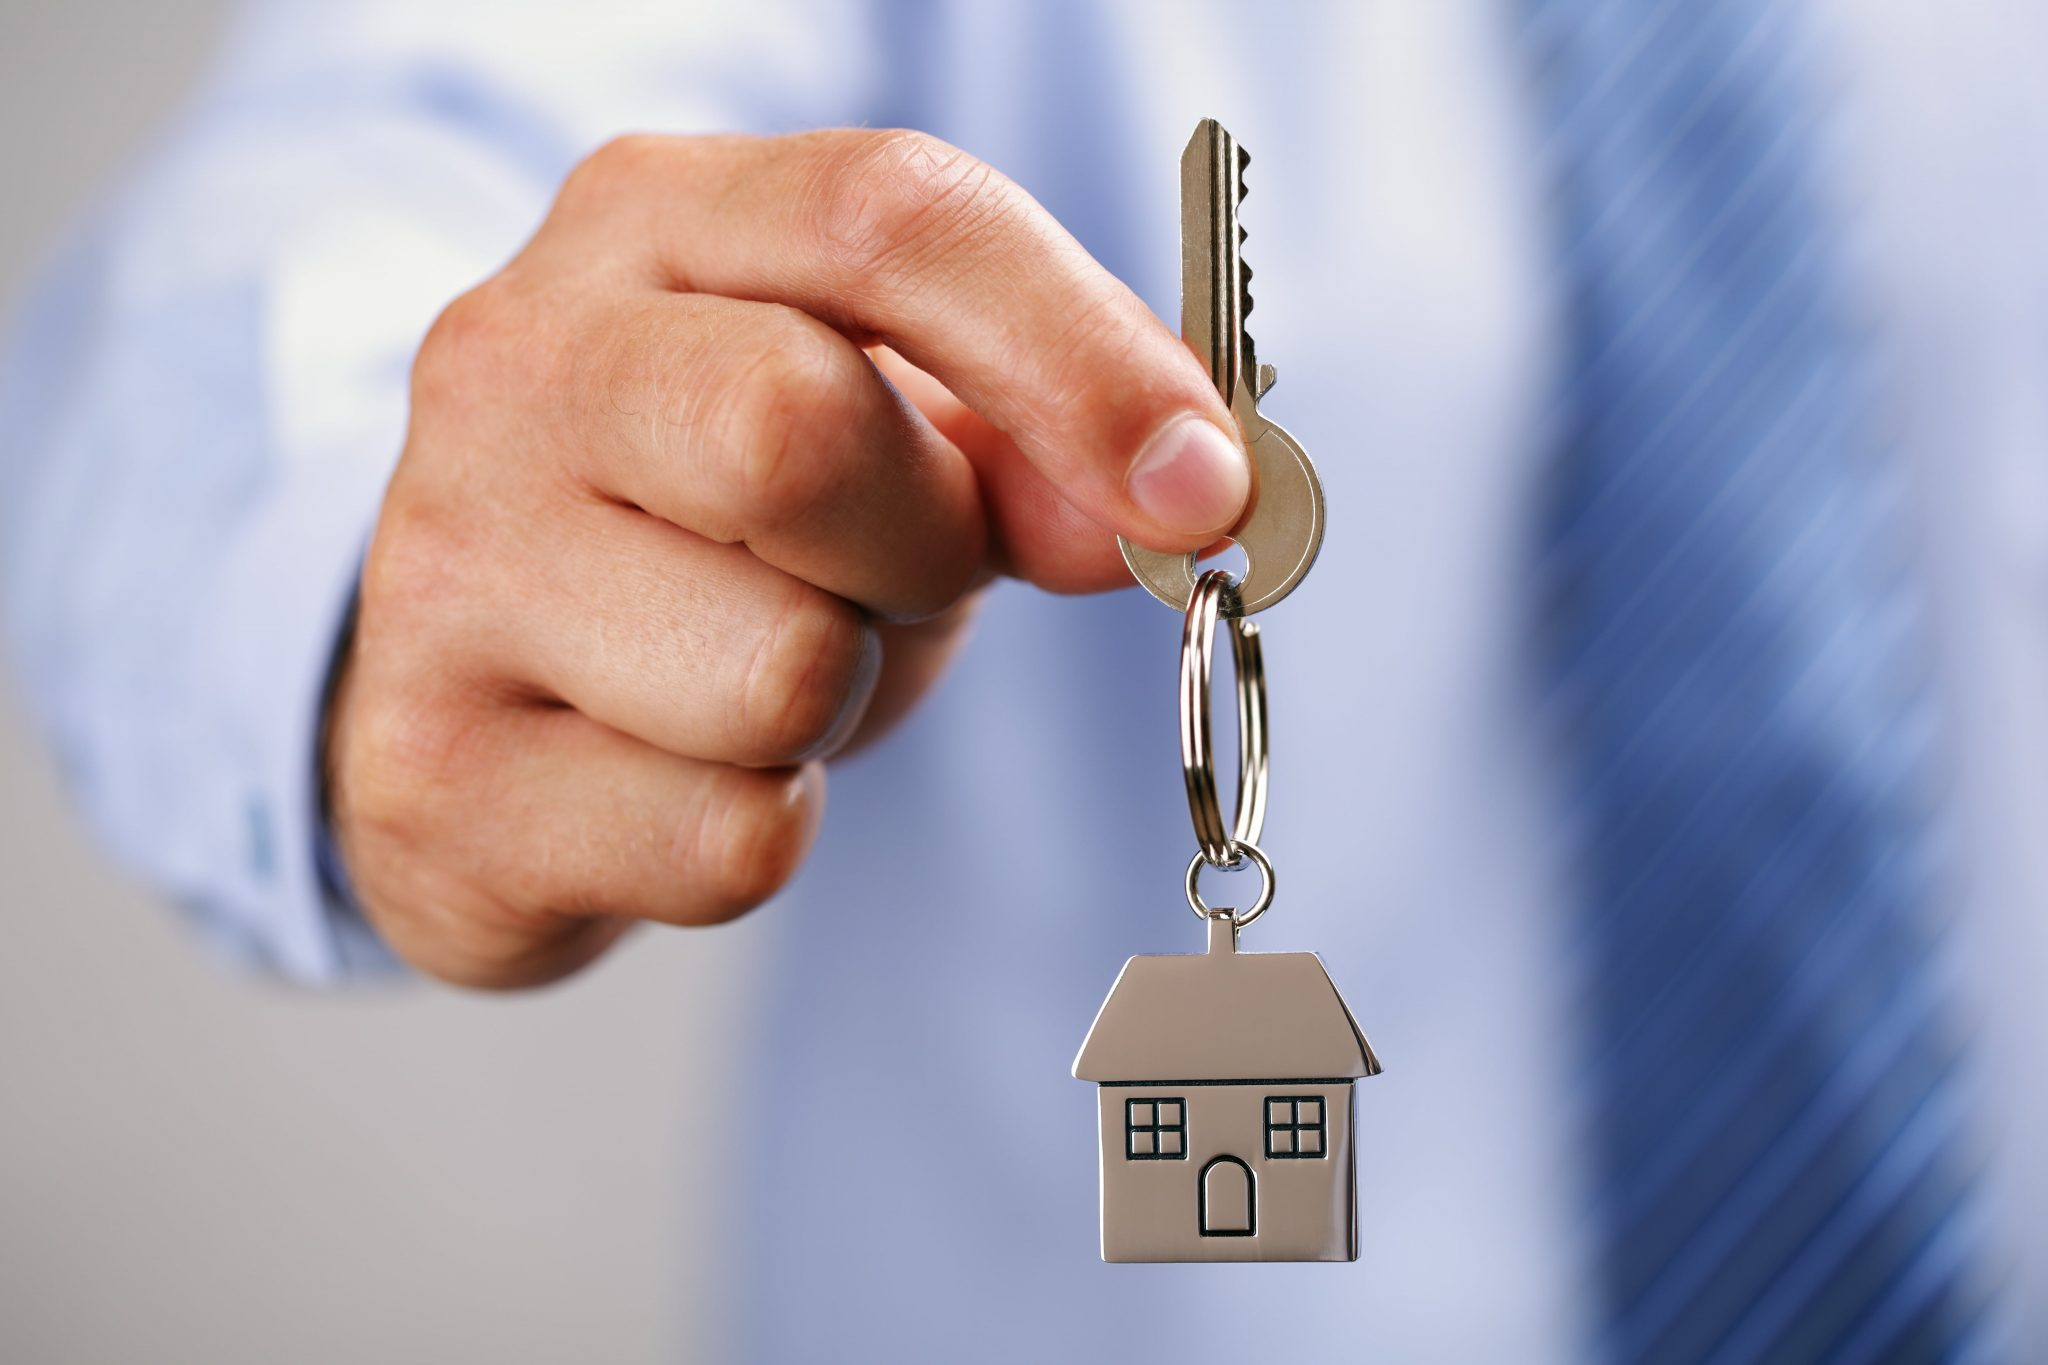 house on a key ring image